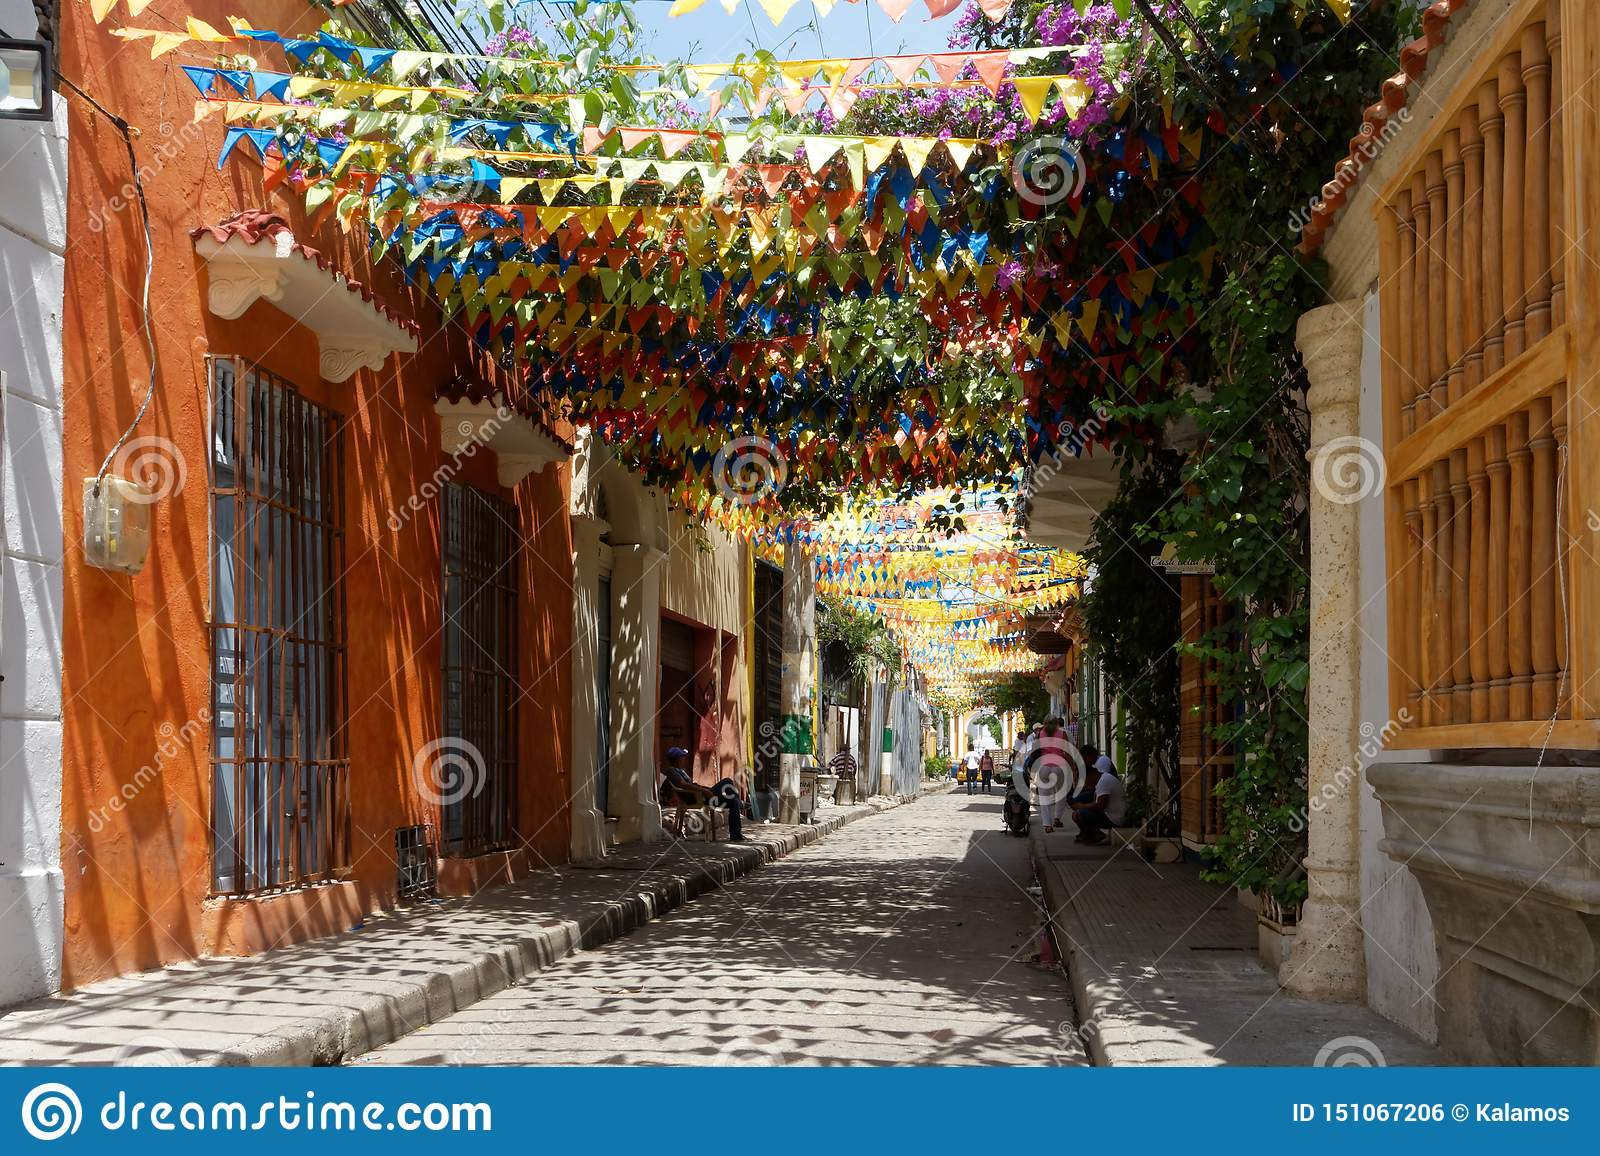 Getsemani Street Decorations 5 Editorial Photo Image Of Decorations Attraction 151067206